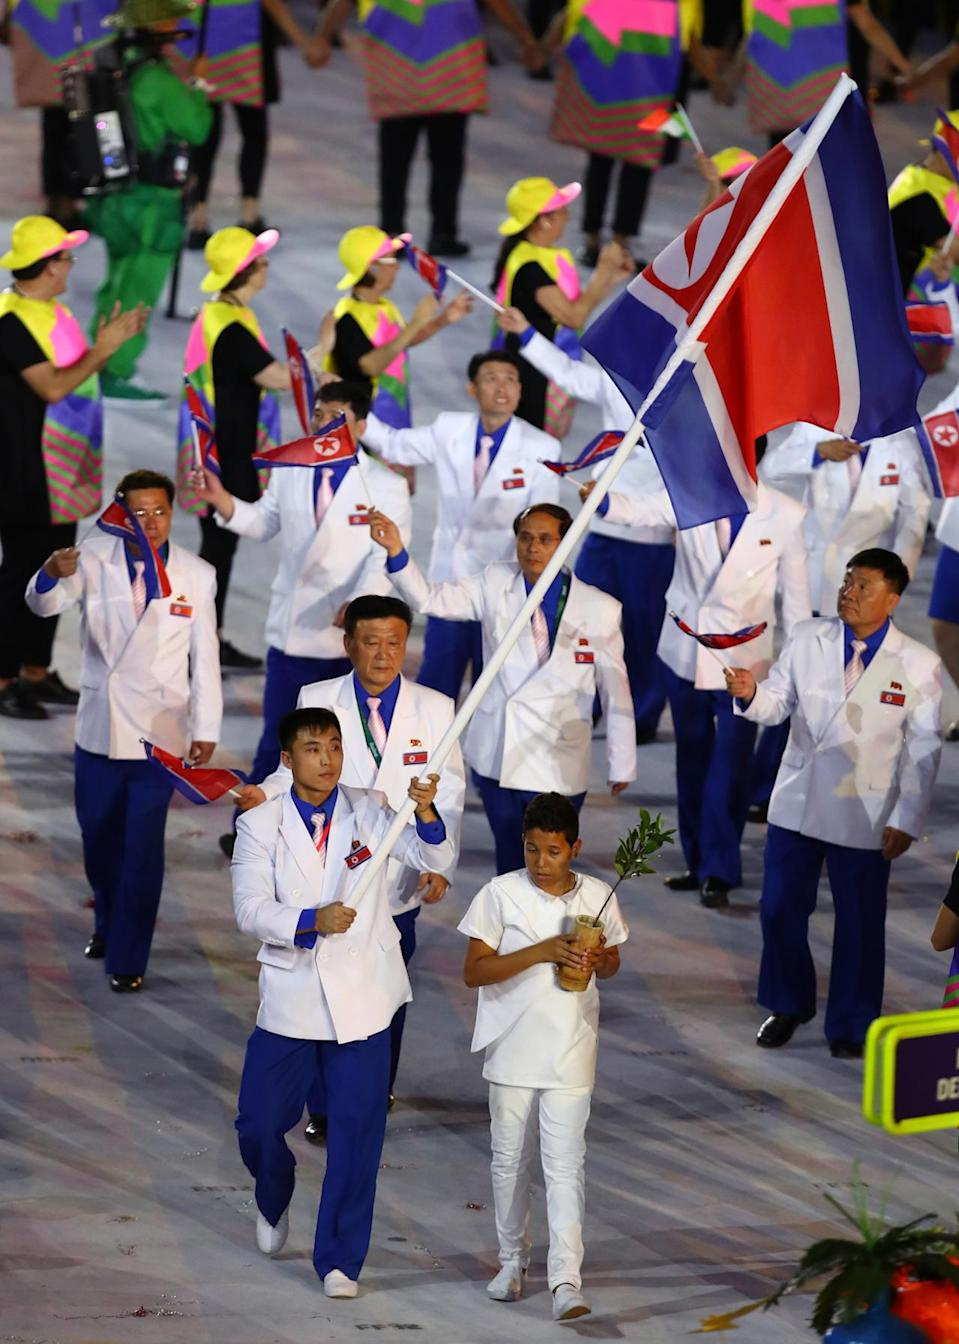 <p>The double-breasted white jackets would have looked better on lab techs. But what truly put North Korea on the worst-dressed list is that none of the athletes smiled. <br></p><p><i>(Photo: Getty Images)</i><br></p>